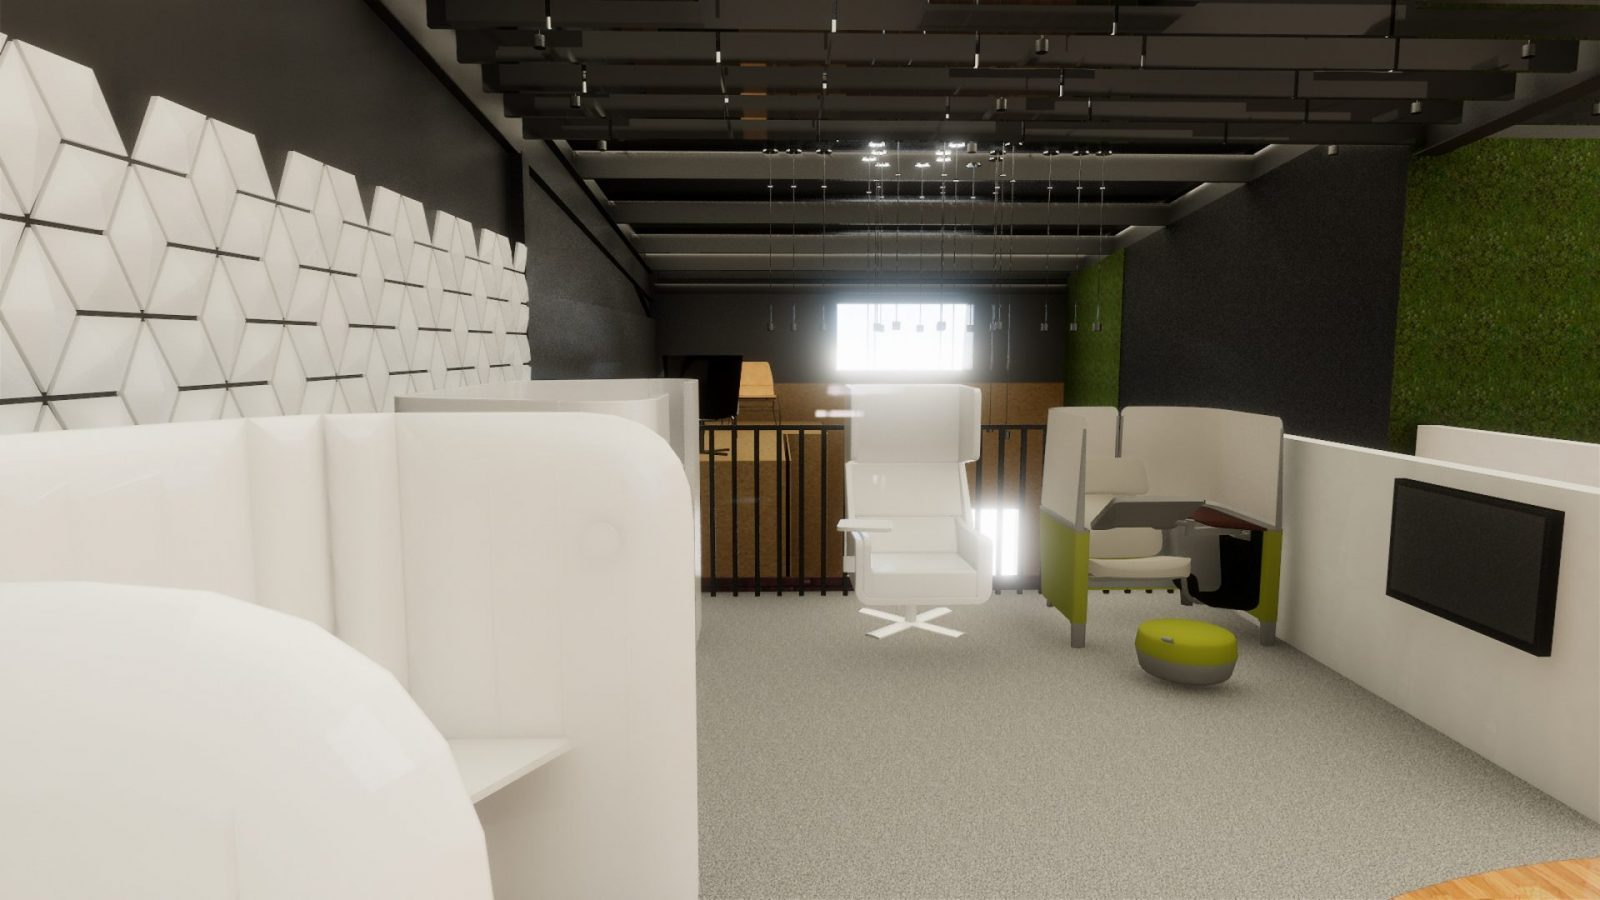 POS agile working showroom guernsey st helier offices refurb interiors architects jersey architecture21